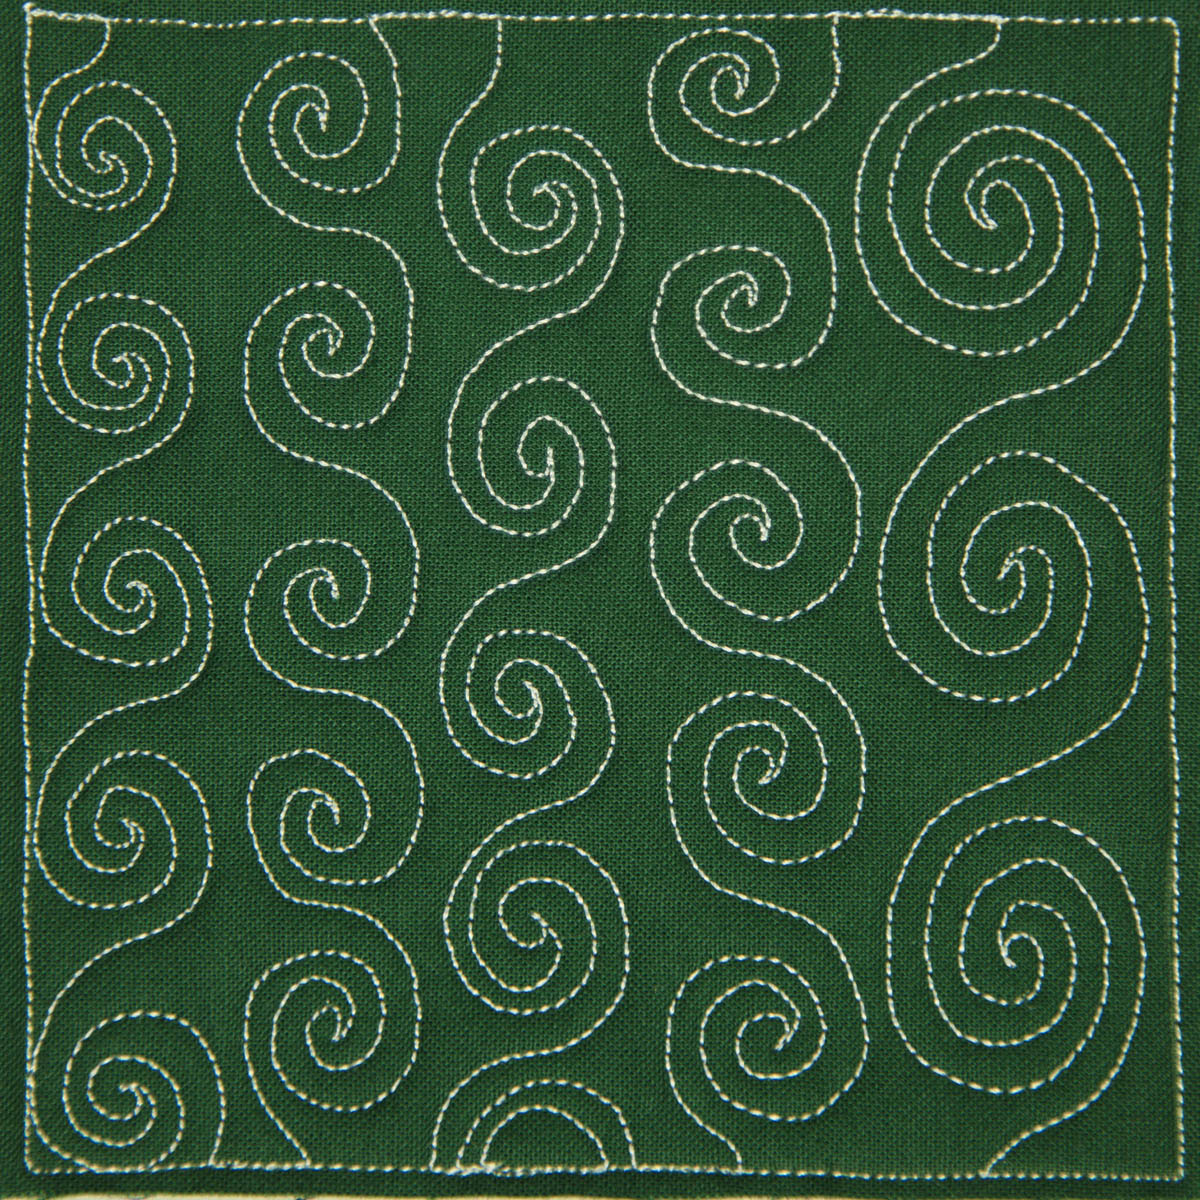 Free Motion Quilting Designs For Sashing : The Free Motion Quilting Project: Day 18 - Spiral Chain